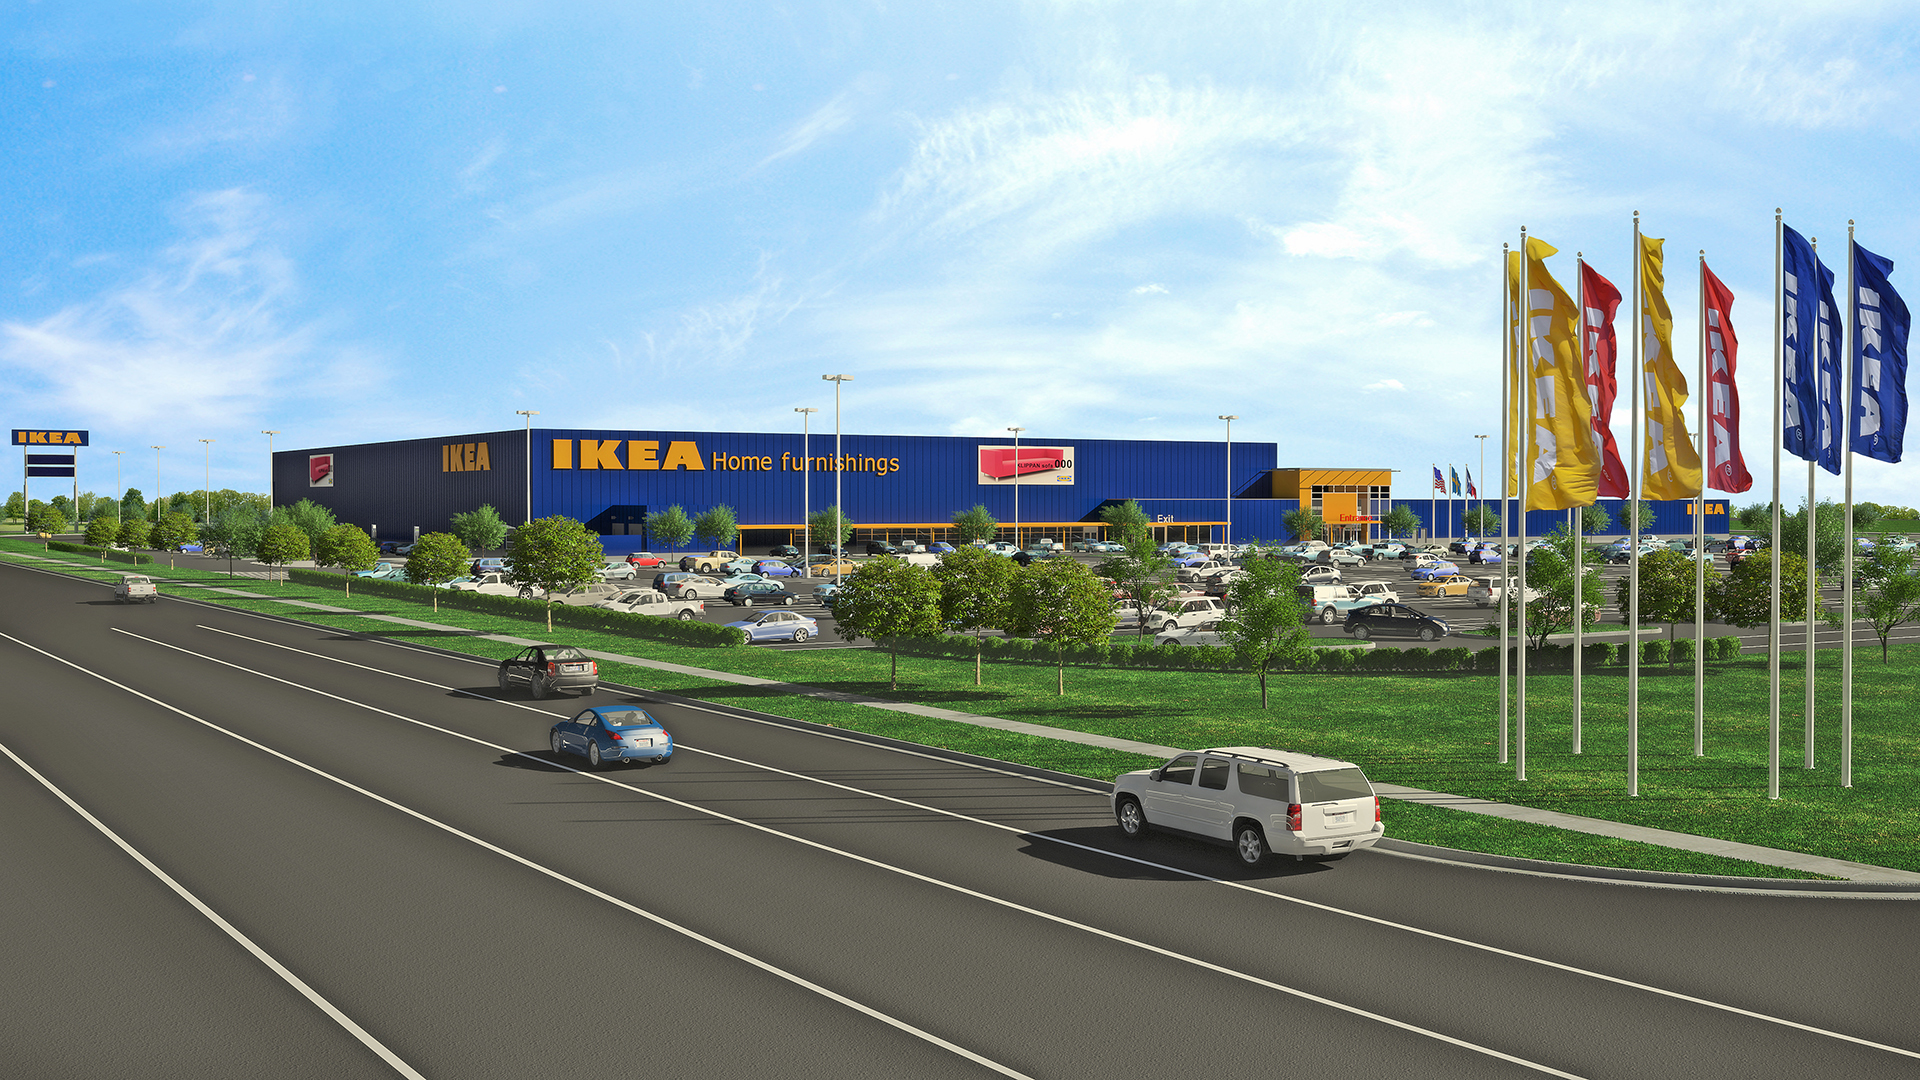 Ikea Stores In Texas Ikea Submits Plans For A Store In Grand Prairie, Texas To